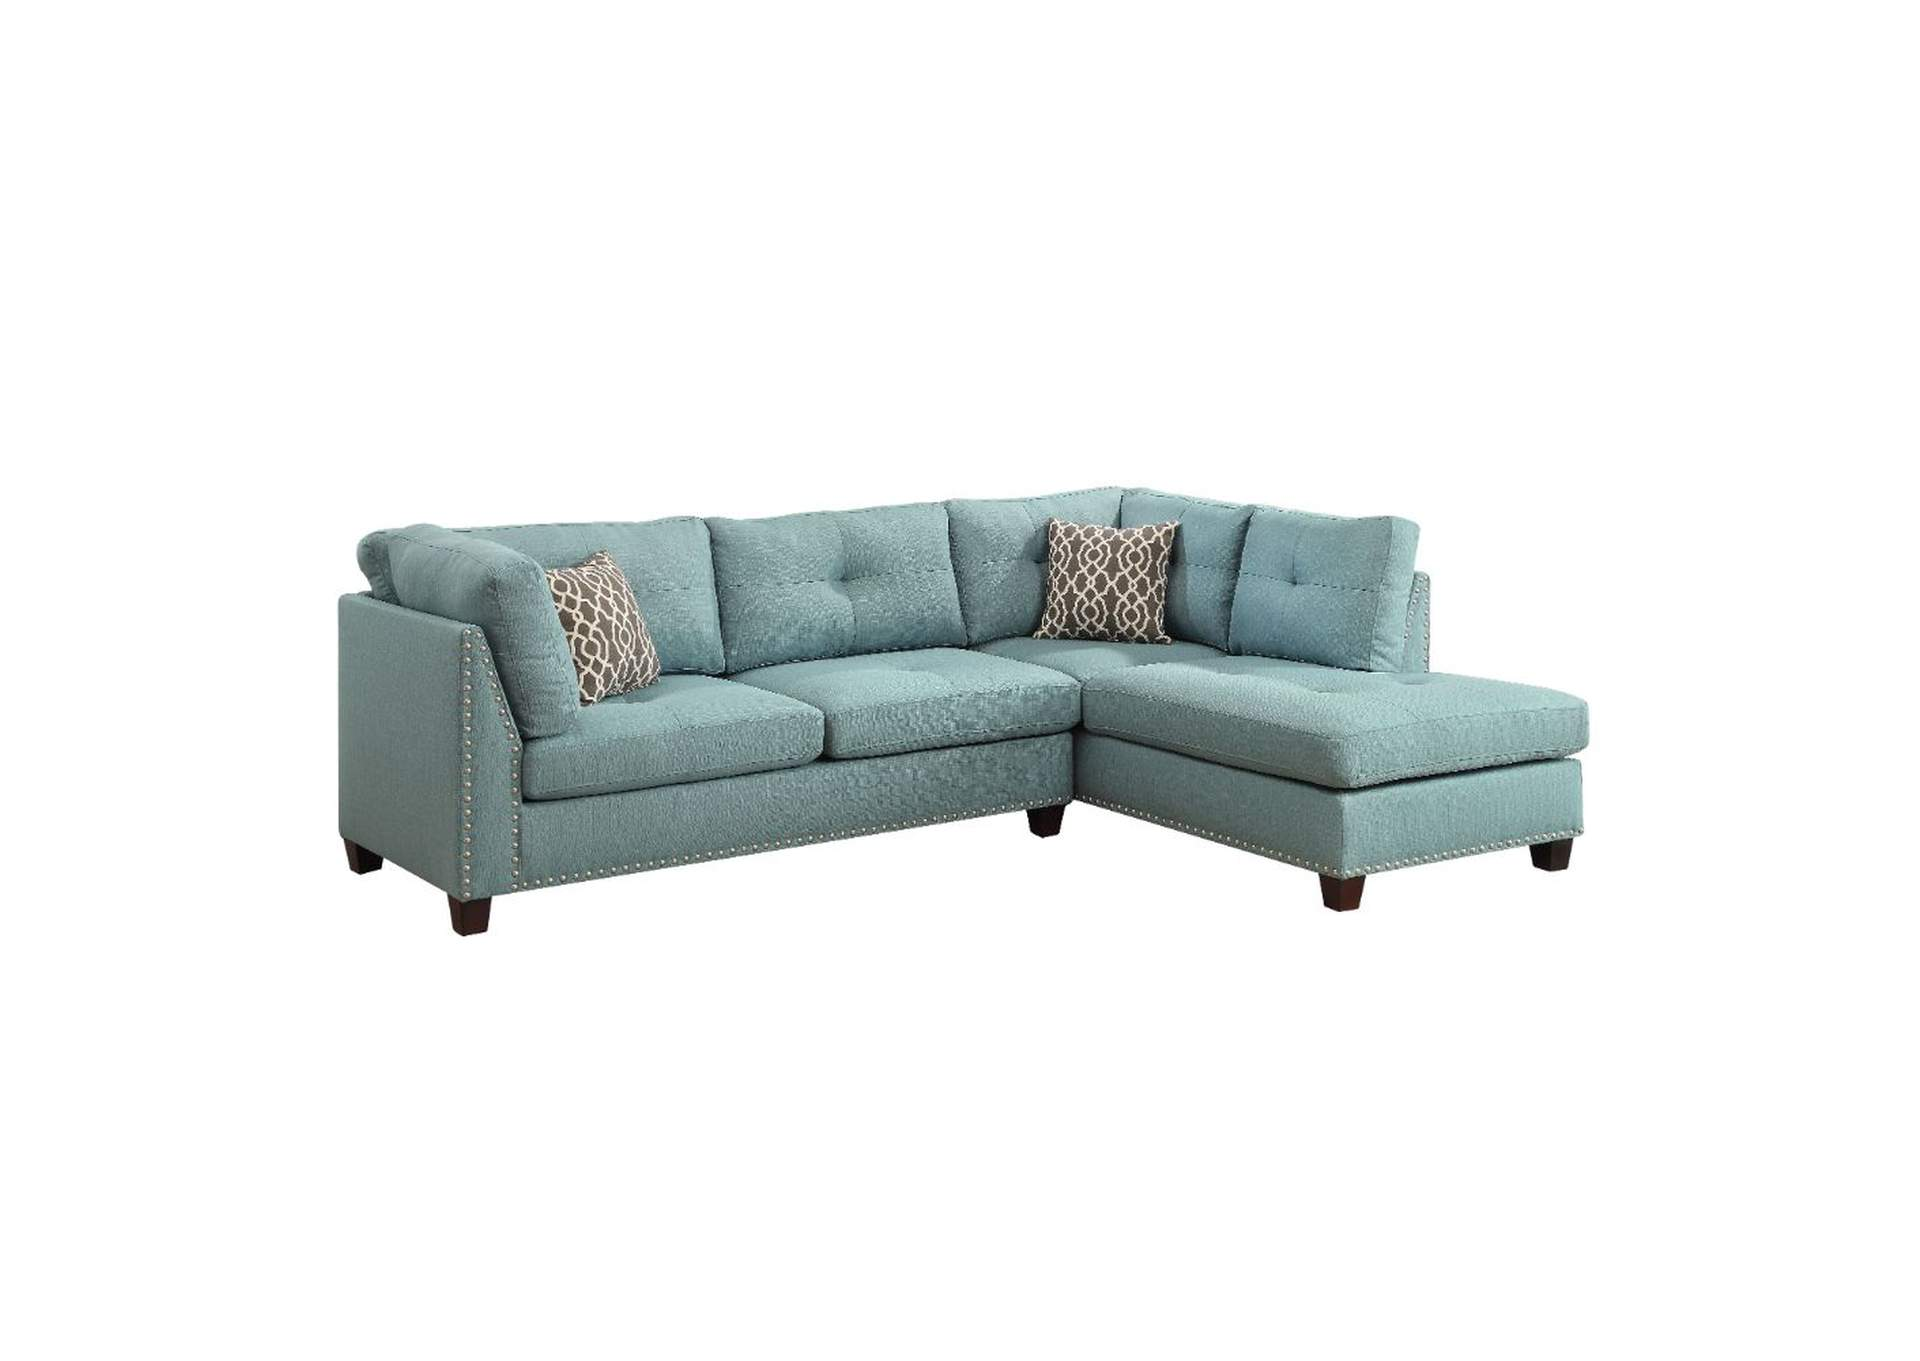 Laurissa Light Teal Linen Sectional Sofa,Acme